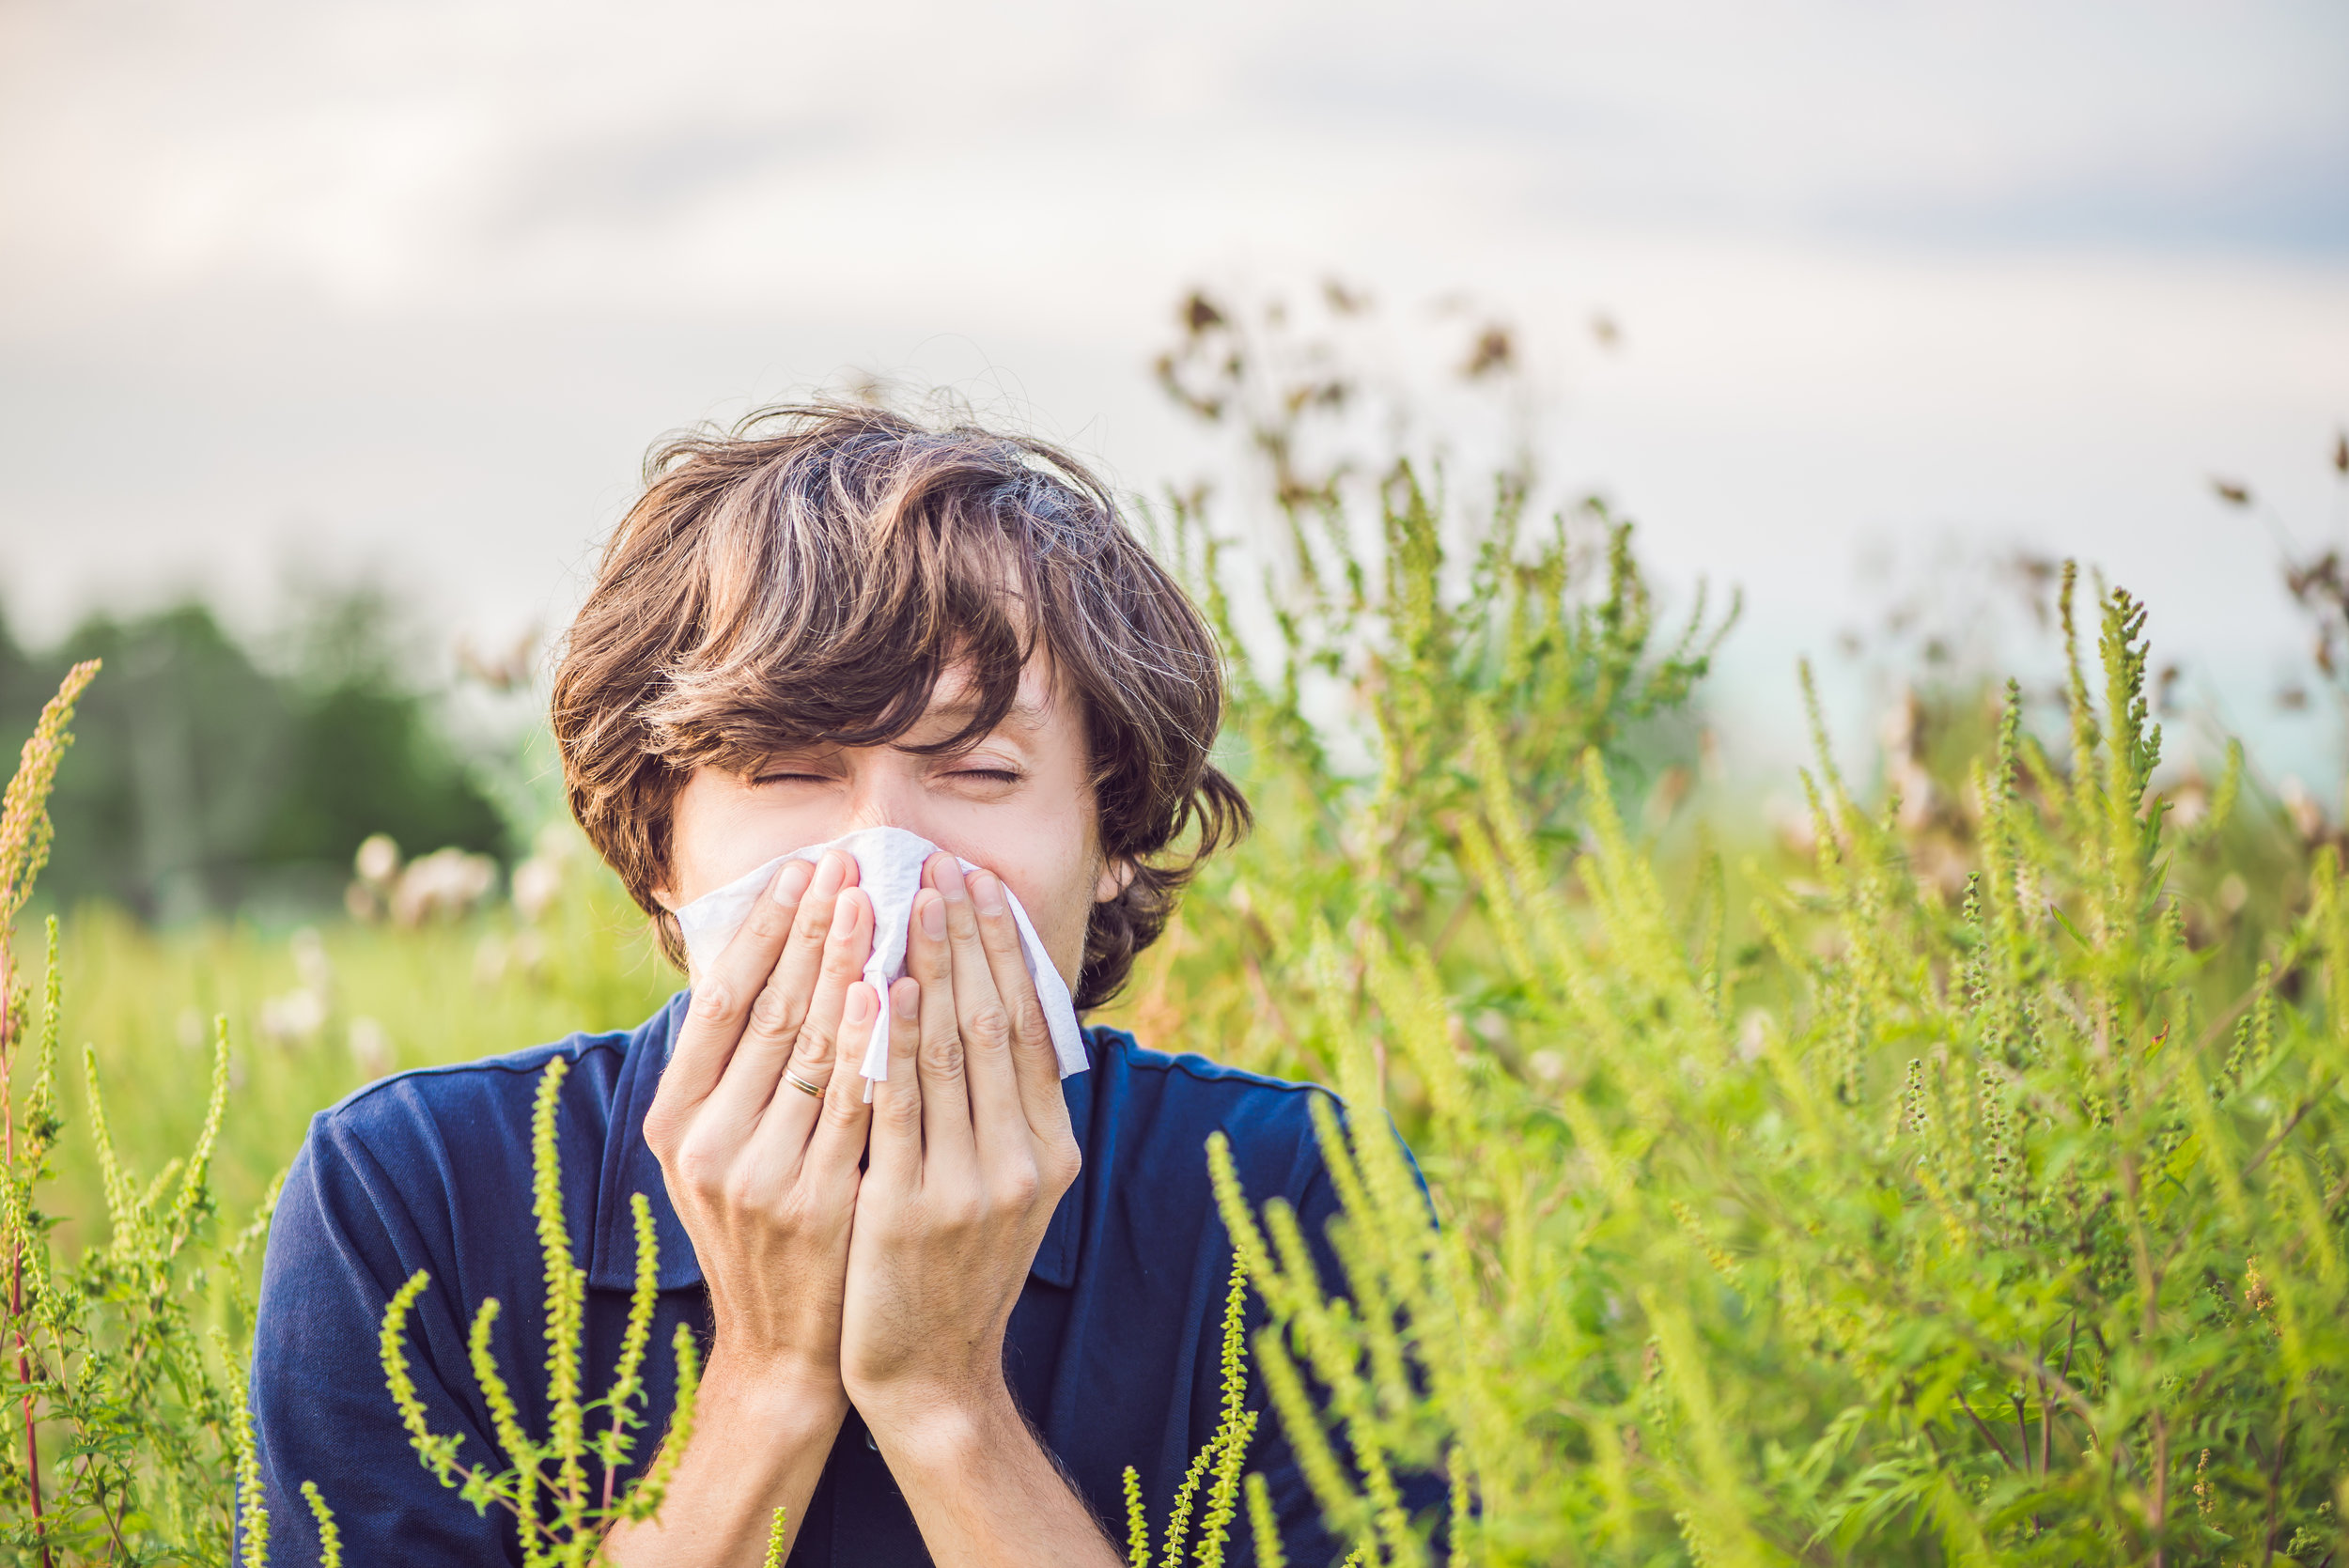 Are you suffering from seasonal allergies? - Here are 9 Natural remedies suggestions that might give you some relief